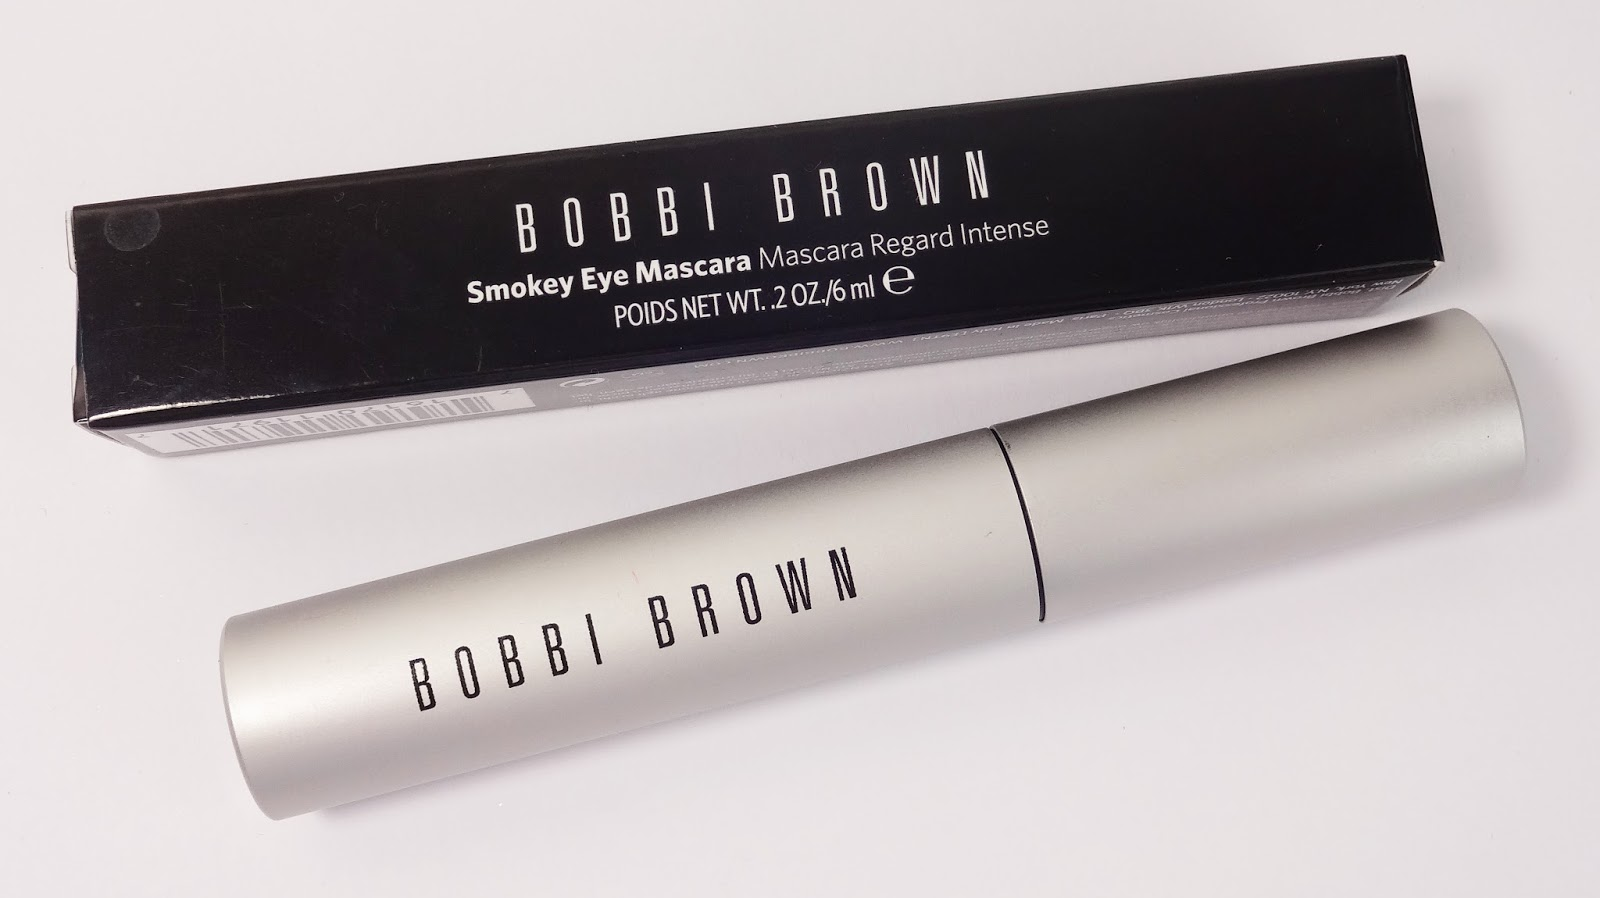 Bobbi Brown - Smokey Eye Mascara Pretty Clover Beautyblog